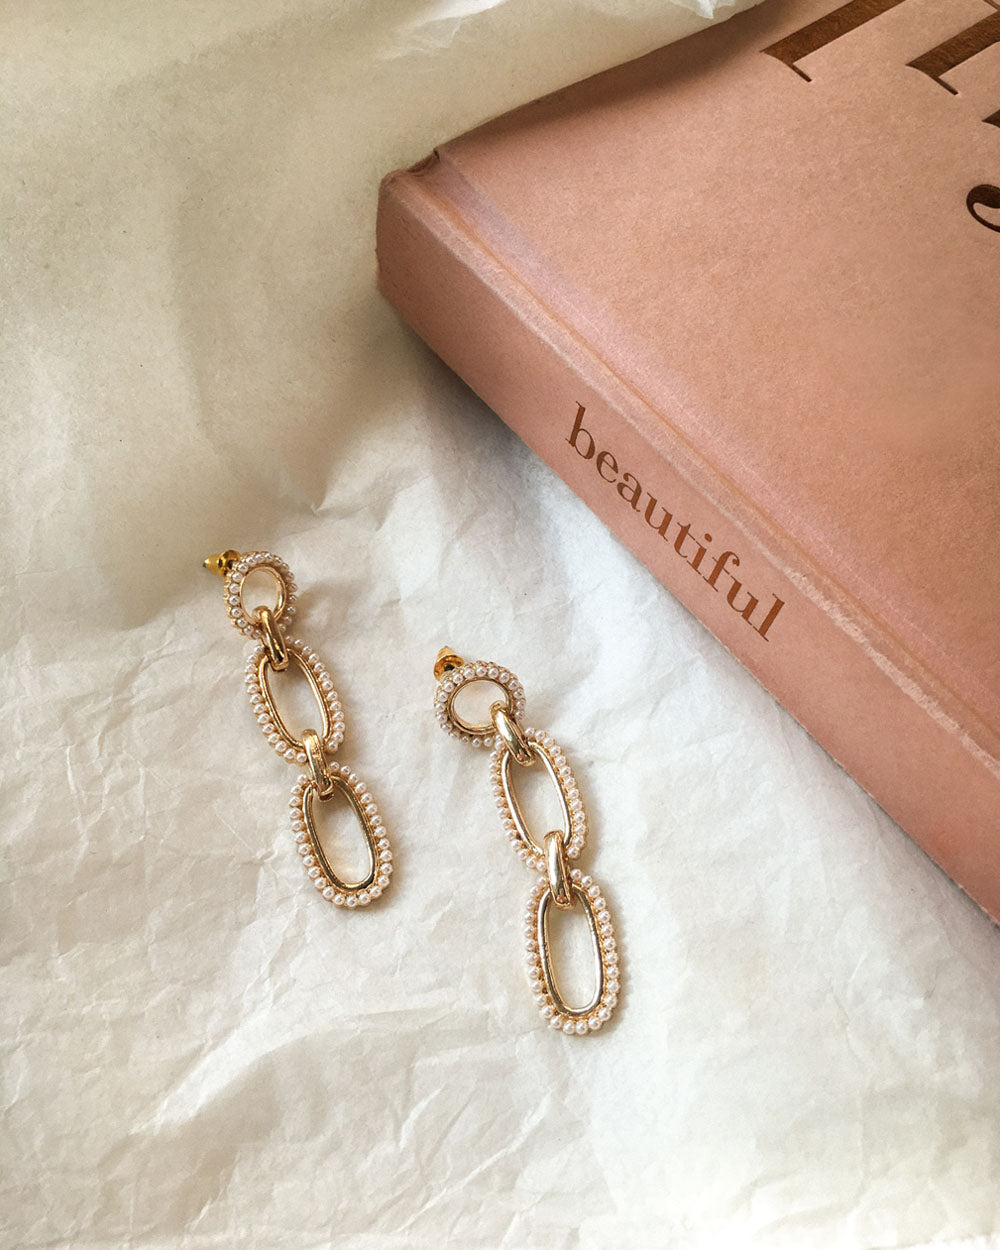 Interlink oval shape drop earrings embellished with tiny little faux pearls - The Hexad